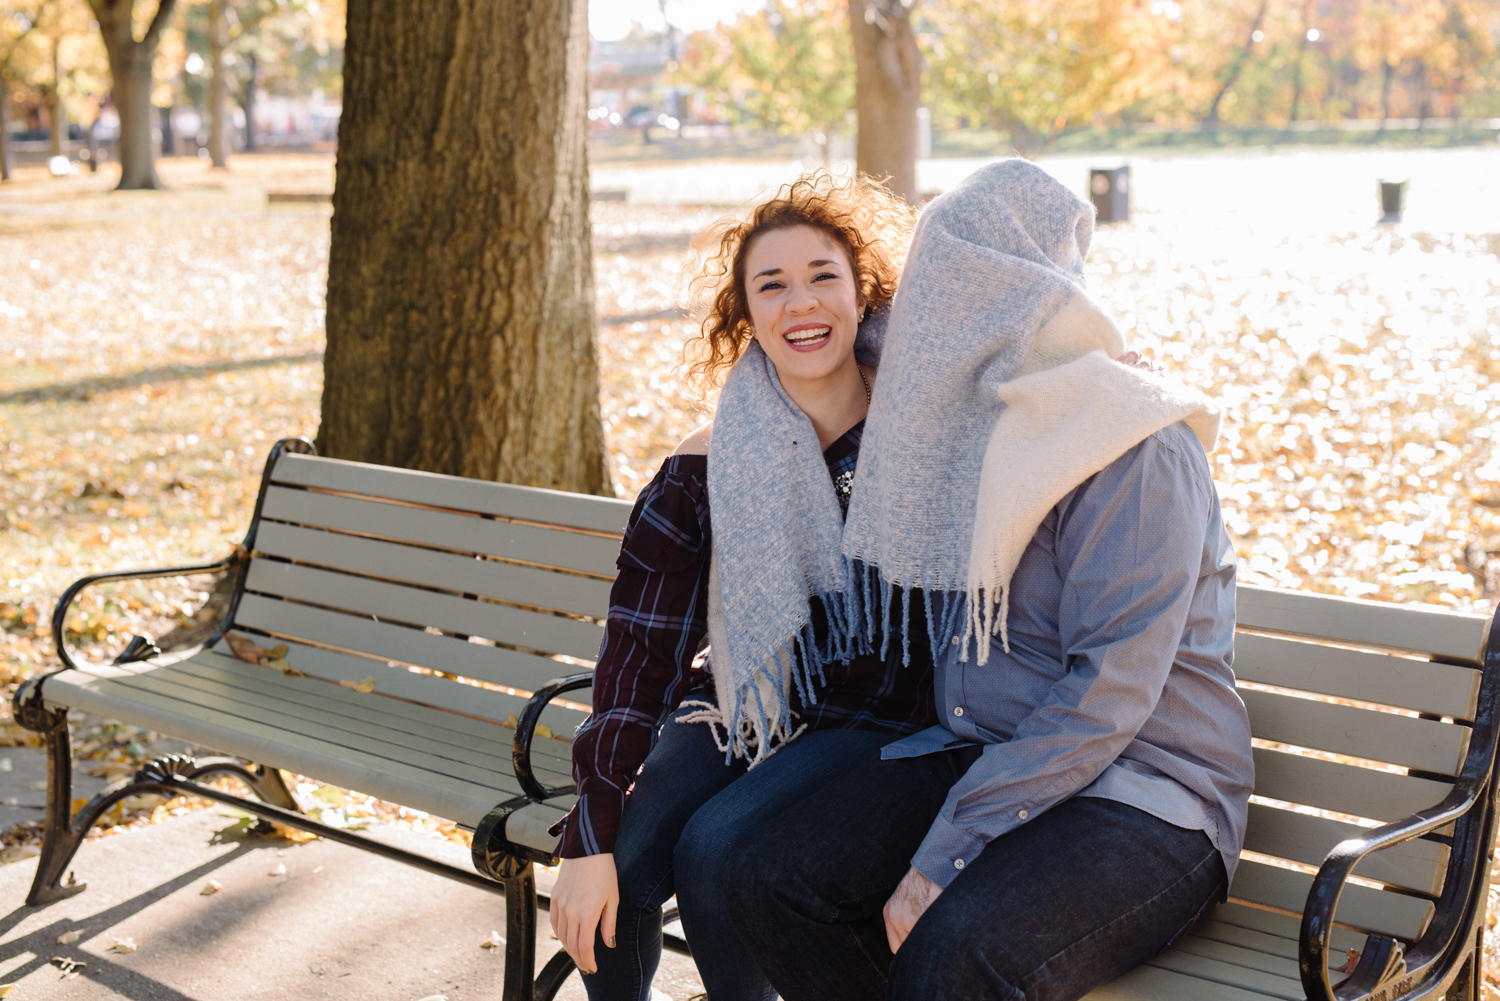 Melissa+Kenny- Watsessing Park Fall Engagement Session- Bloomfield New Jersey- Olivia Christina Photo-1.JPG